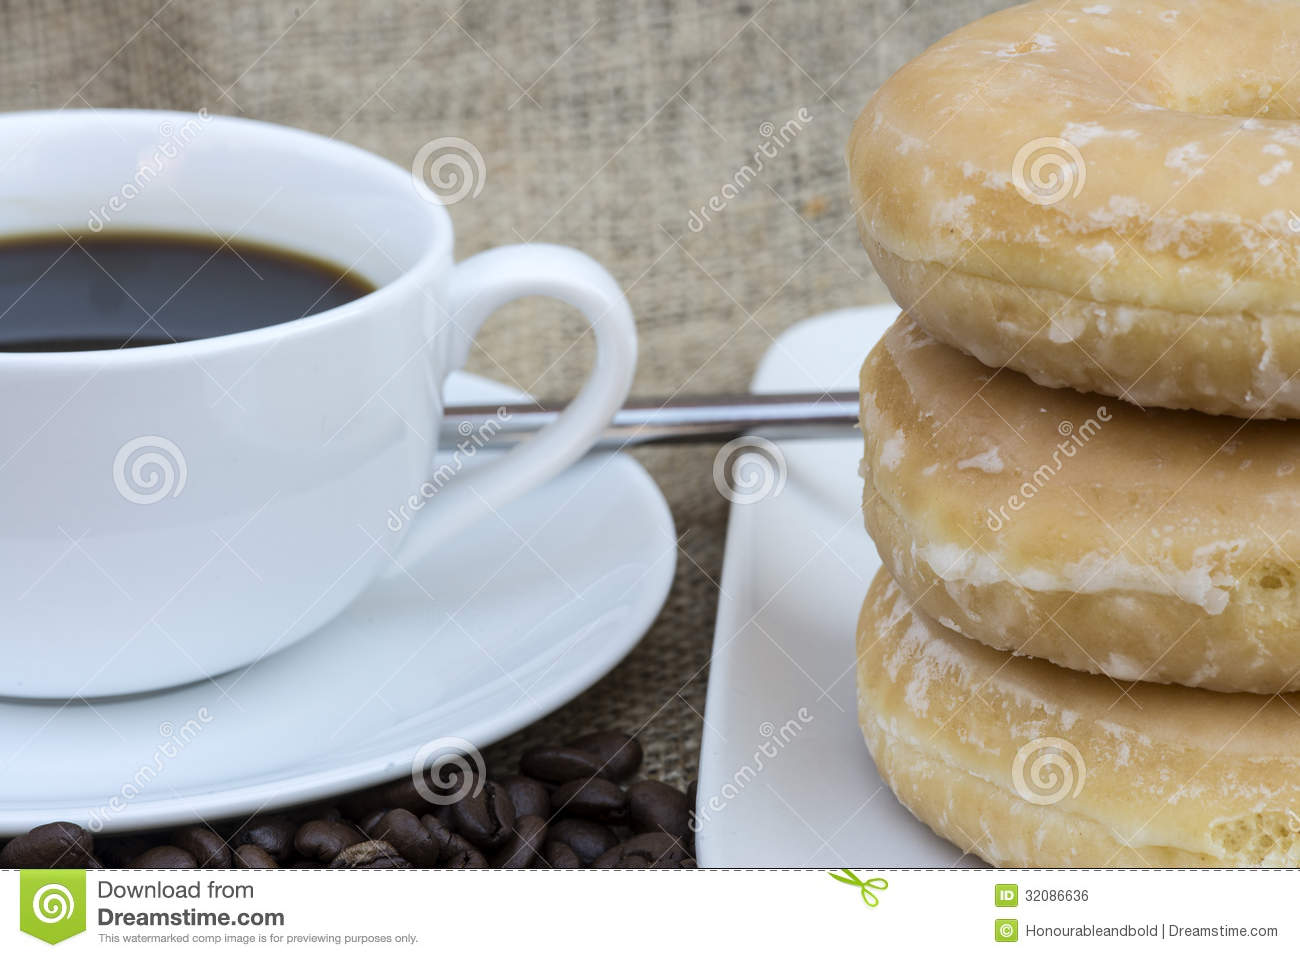 Coffee And Donuts Royalty Free Stock Image - Image: 32086636